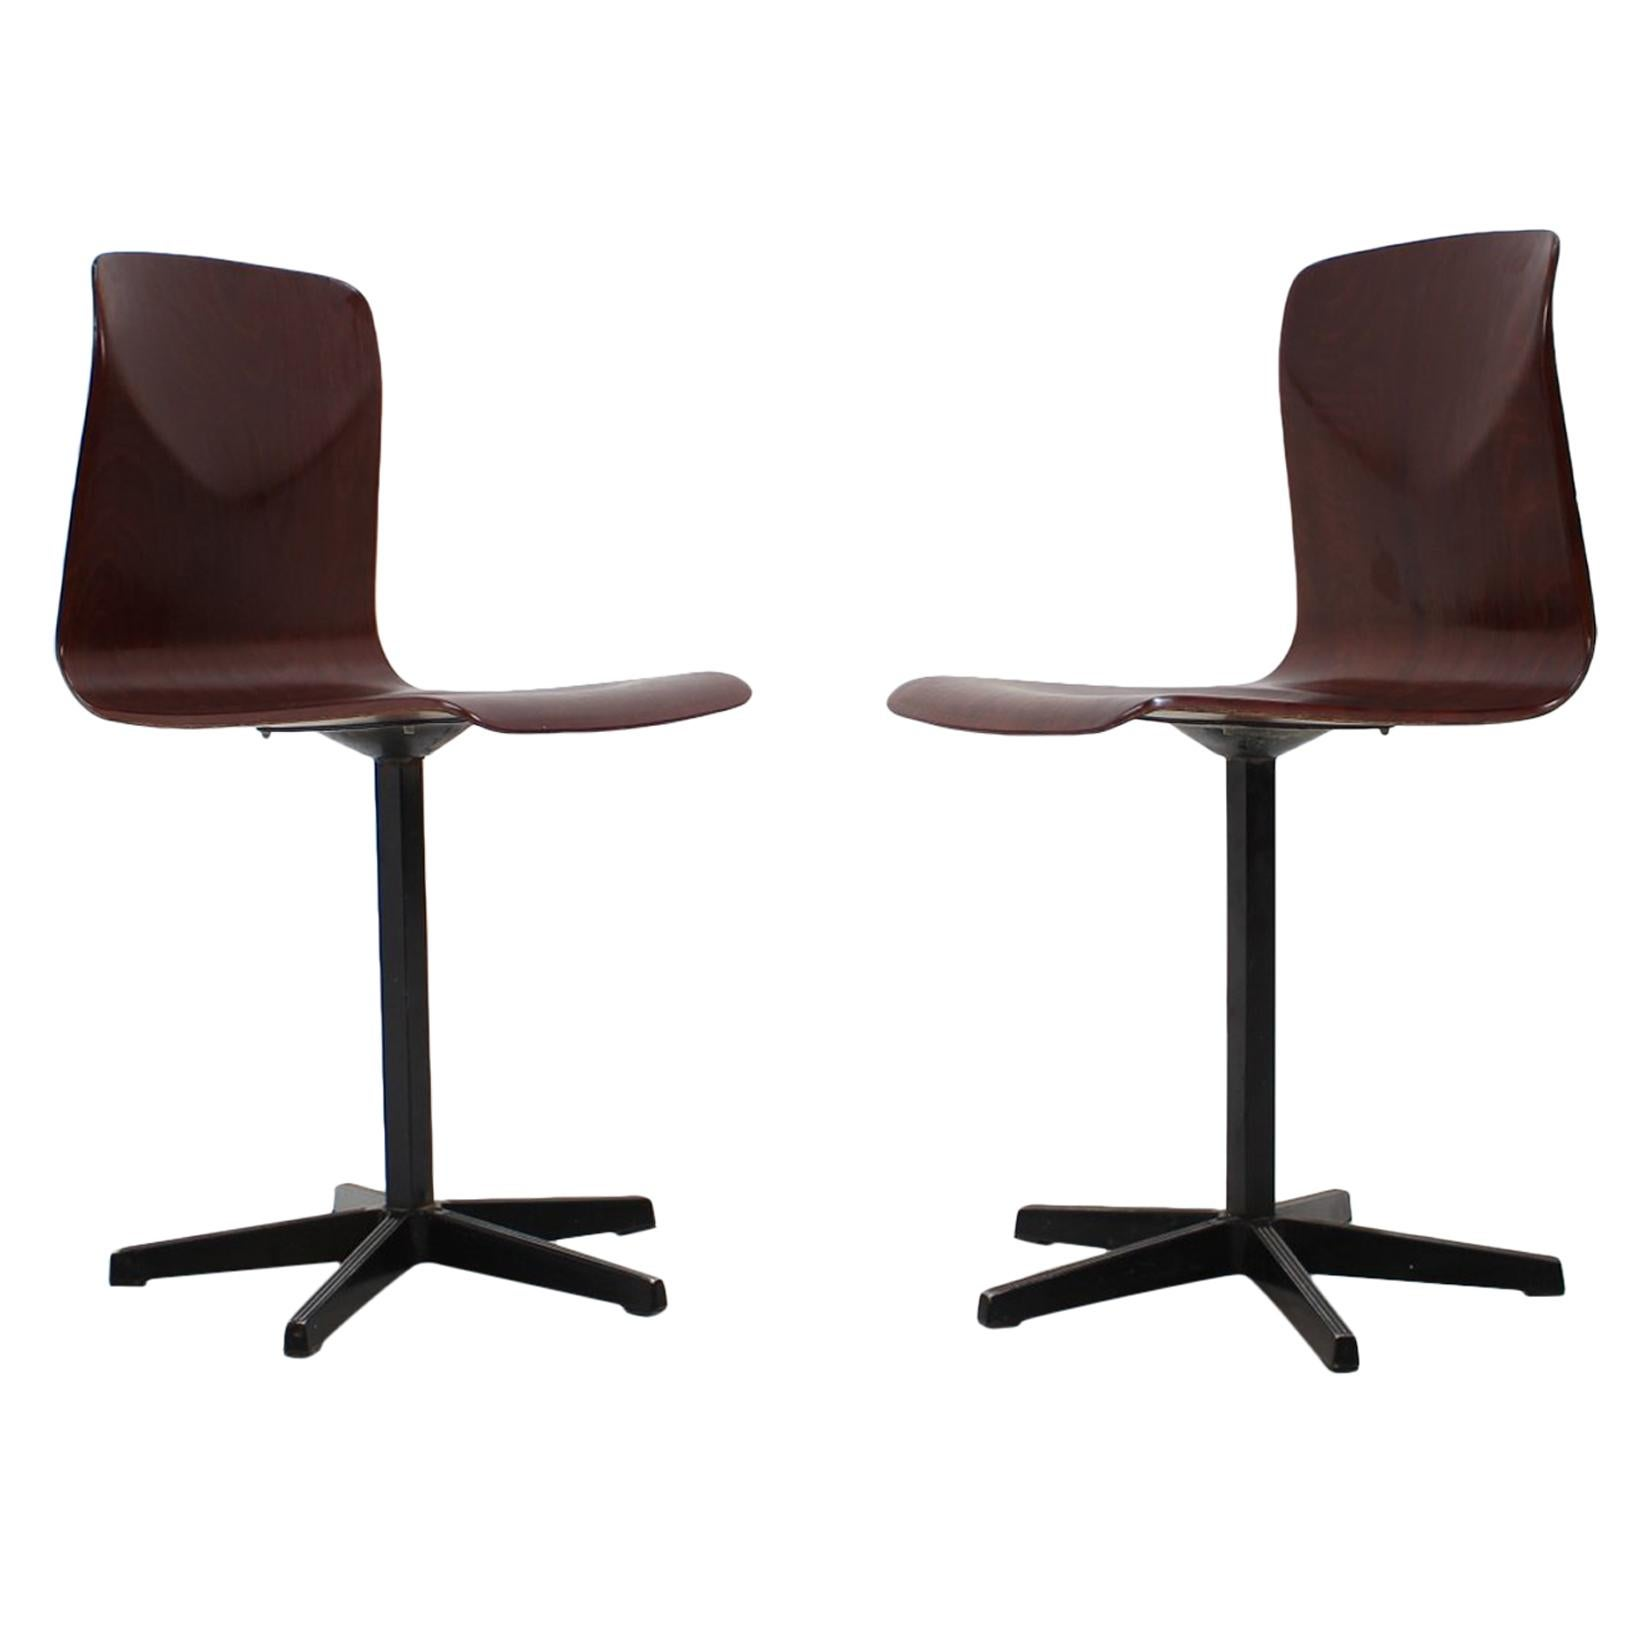 Pair of Midcentury Industrial Style Chairs, Elmar Flötotto for Pagholz, 1970s